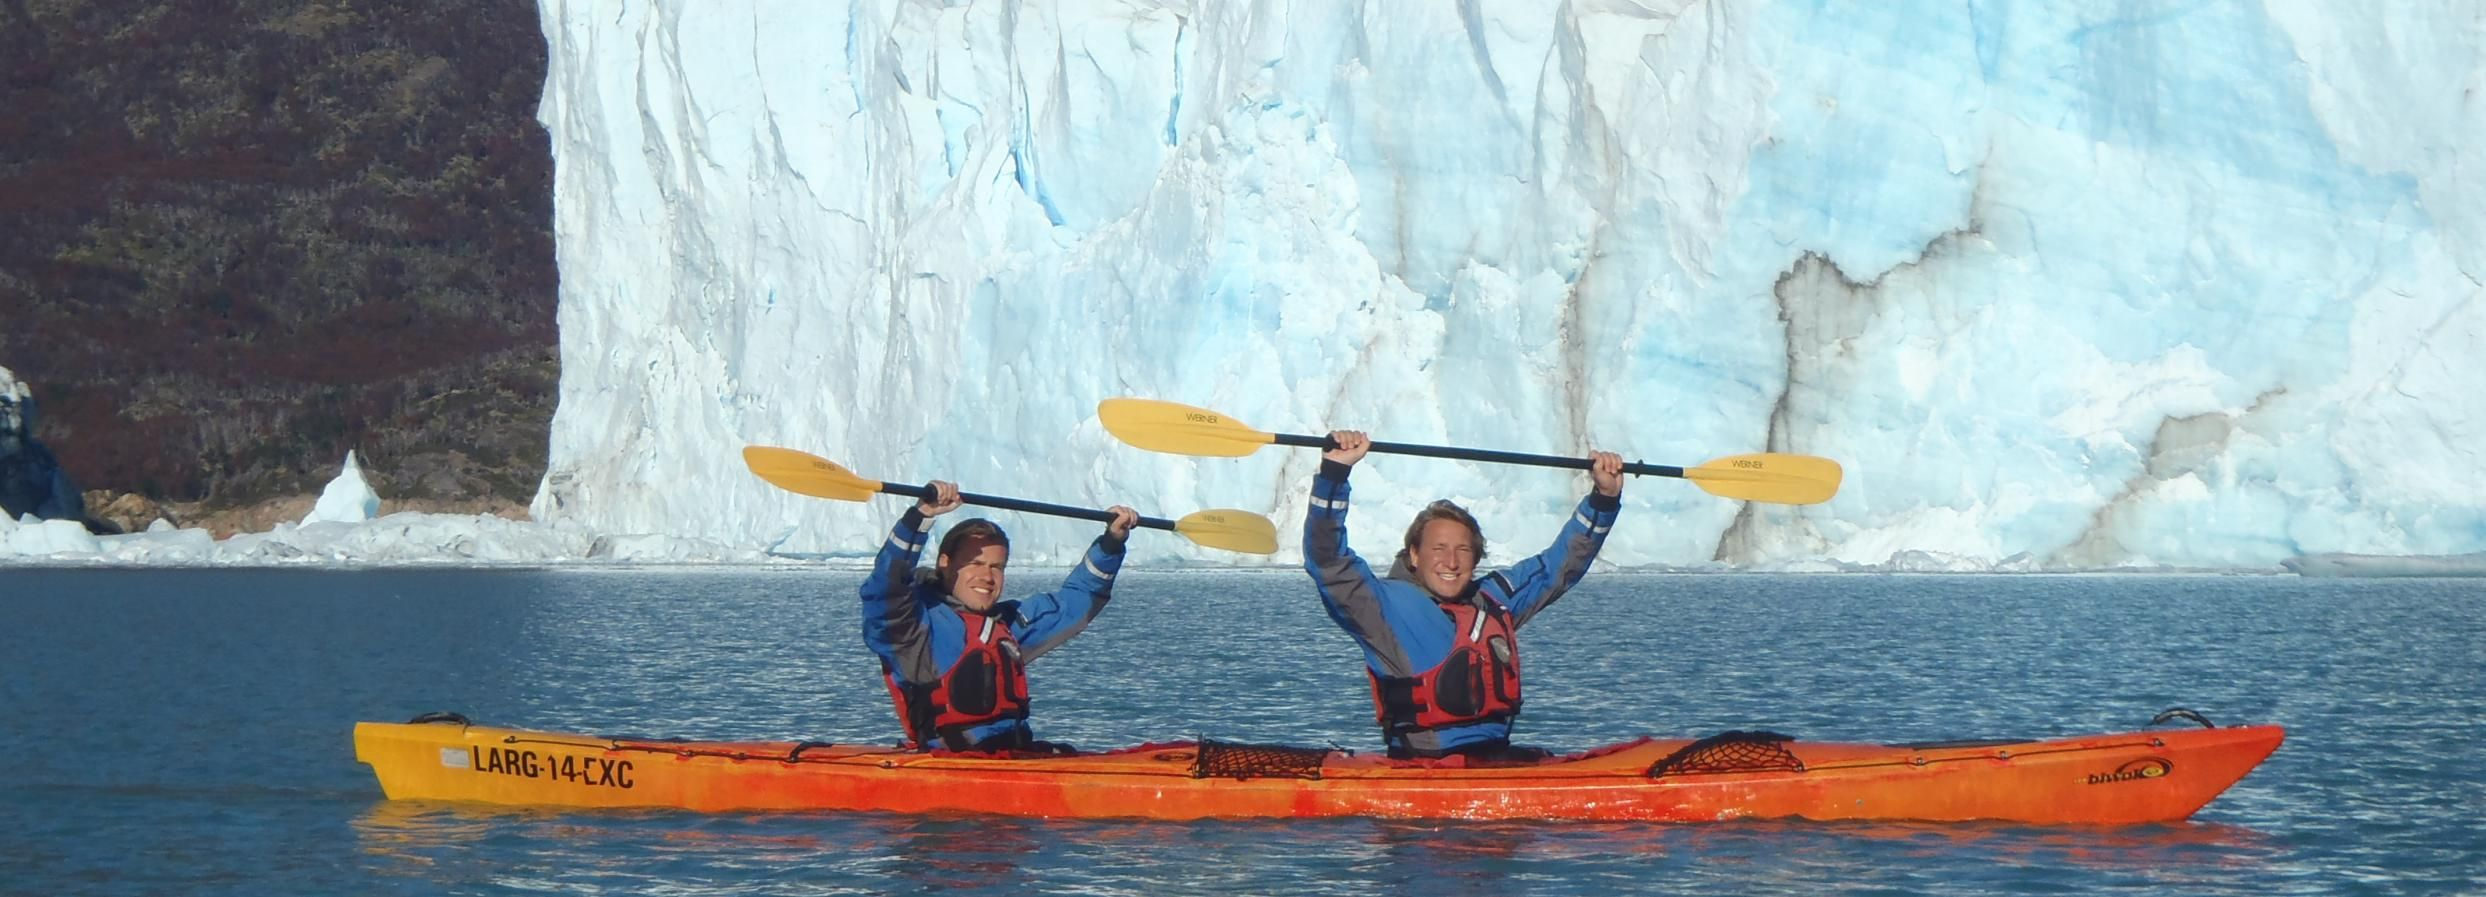 El Calafate: Perito Moreno Kayak Experience with Transport